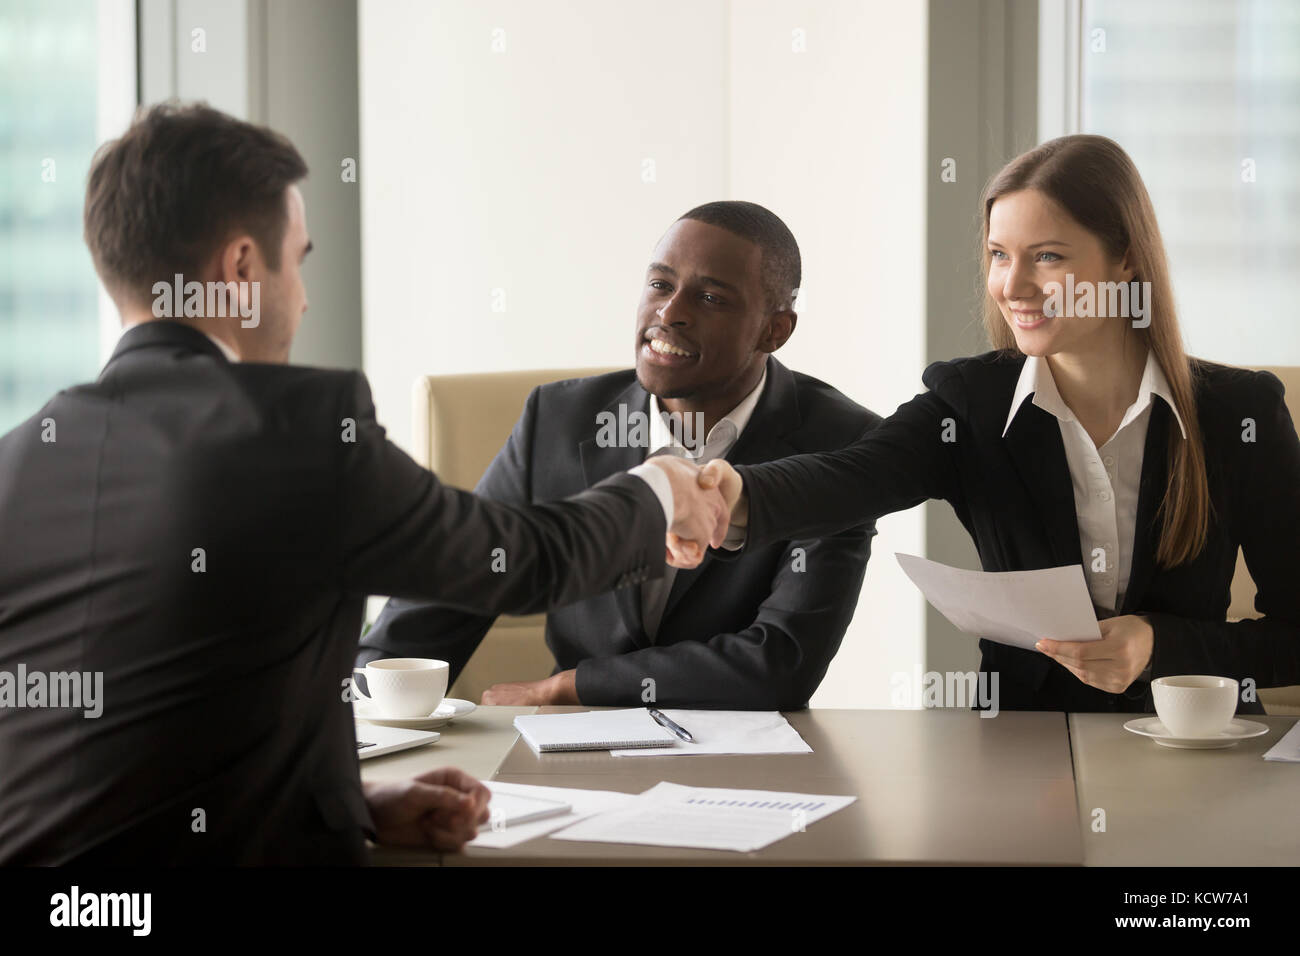 Smiling businesswoman handshaking with partner at beginning of multinational negotiations. Afro american entrepreneur - Stock Image